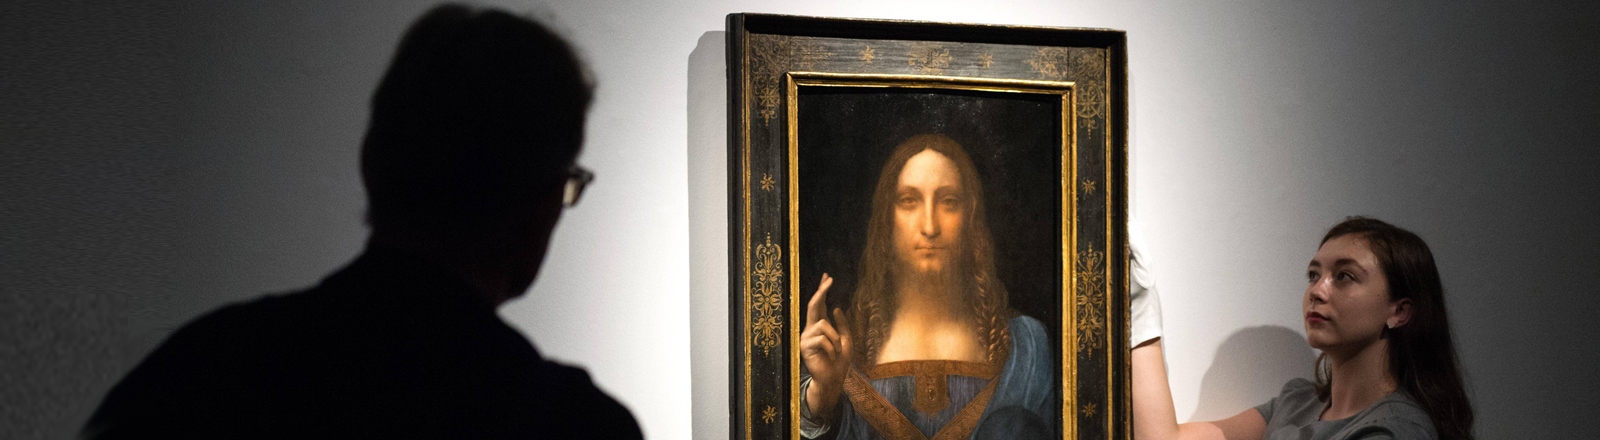 "Leonardo da Vincis Gemälde ""Salvator Mundi"" bei Christie's in New York"